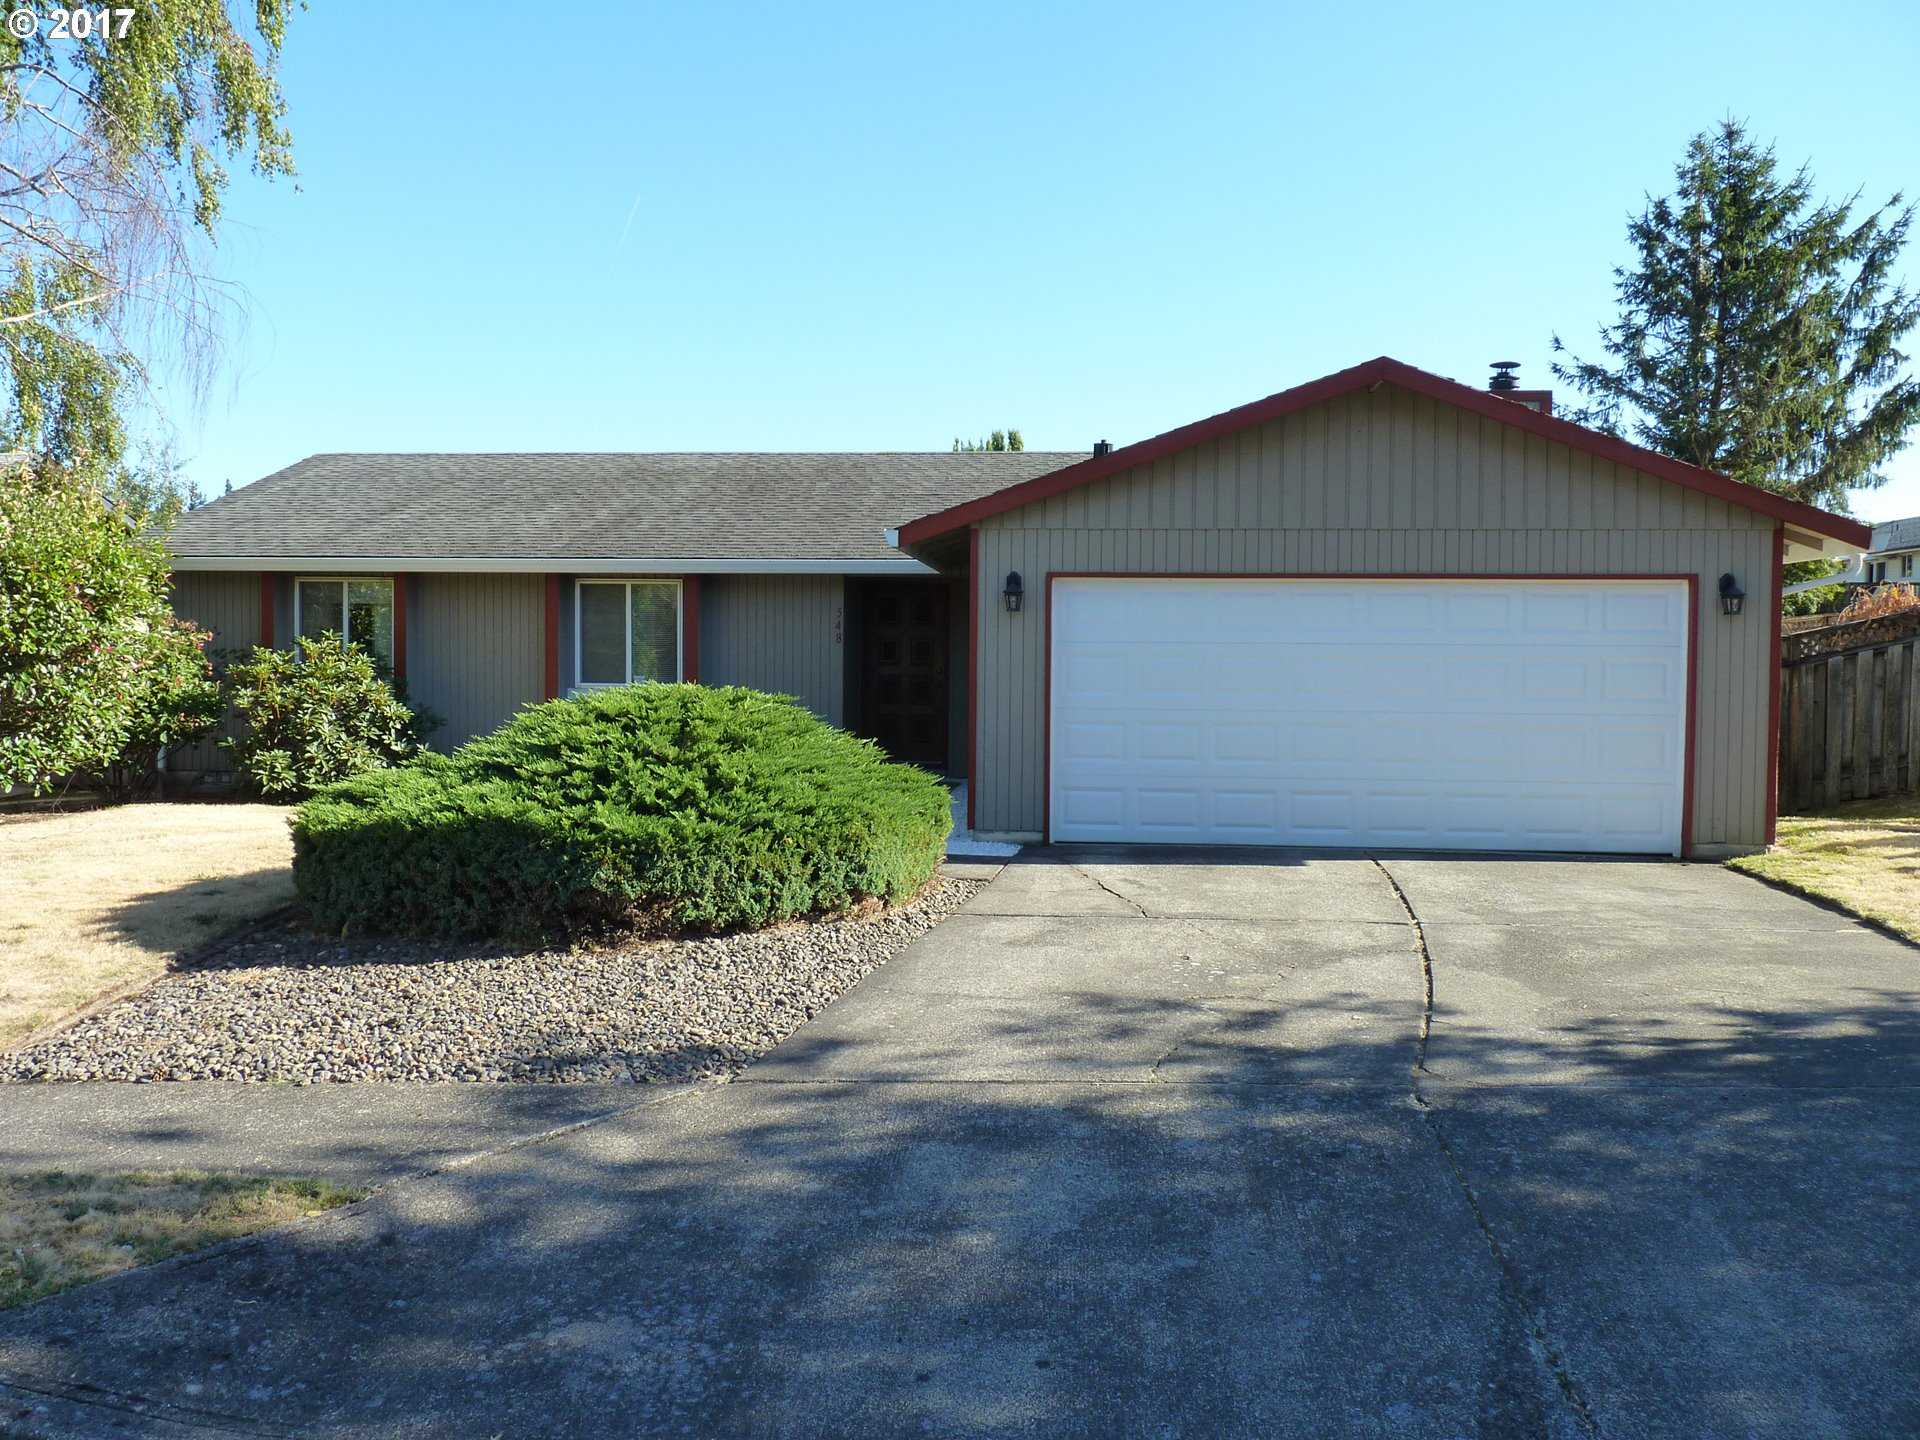 $307,000 - 3Br/2Ba -  for Sale in Troutdale